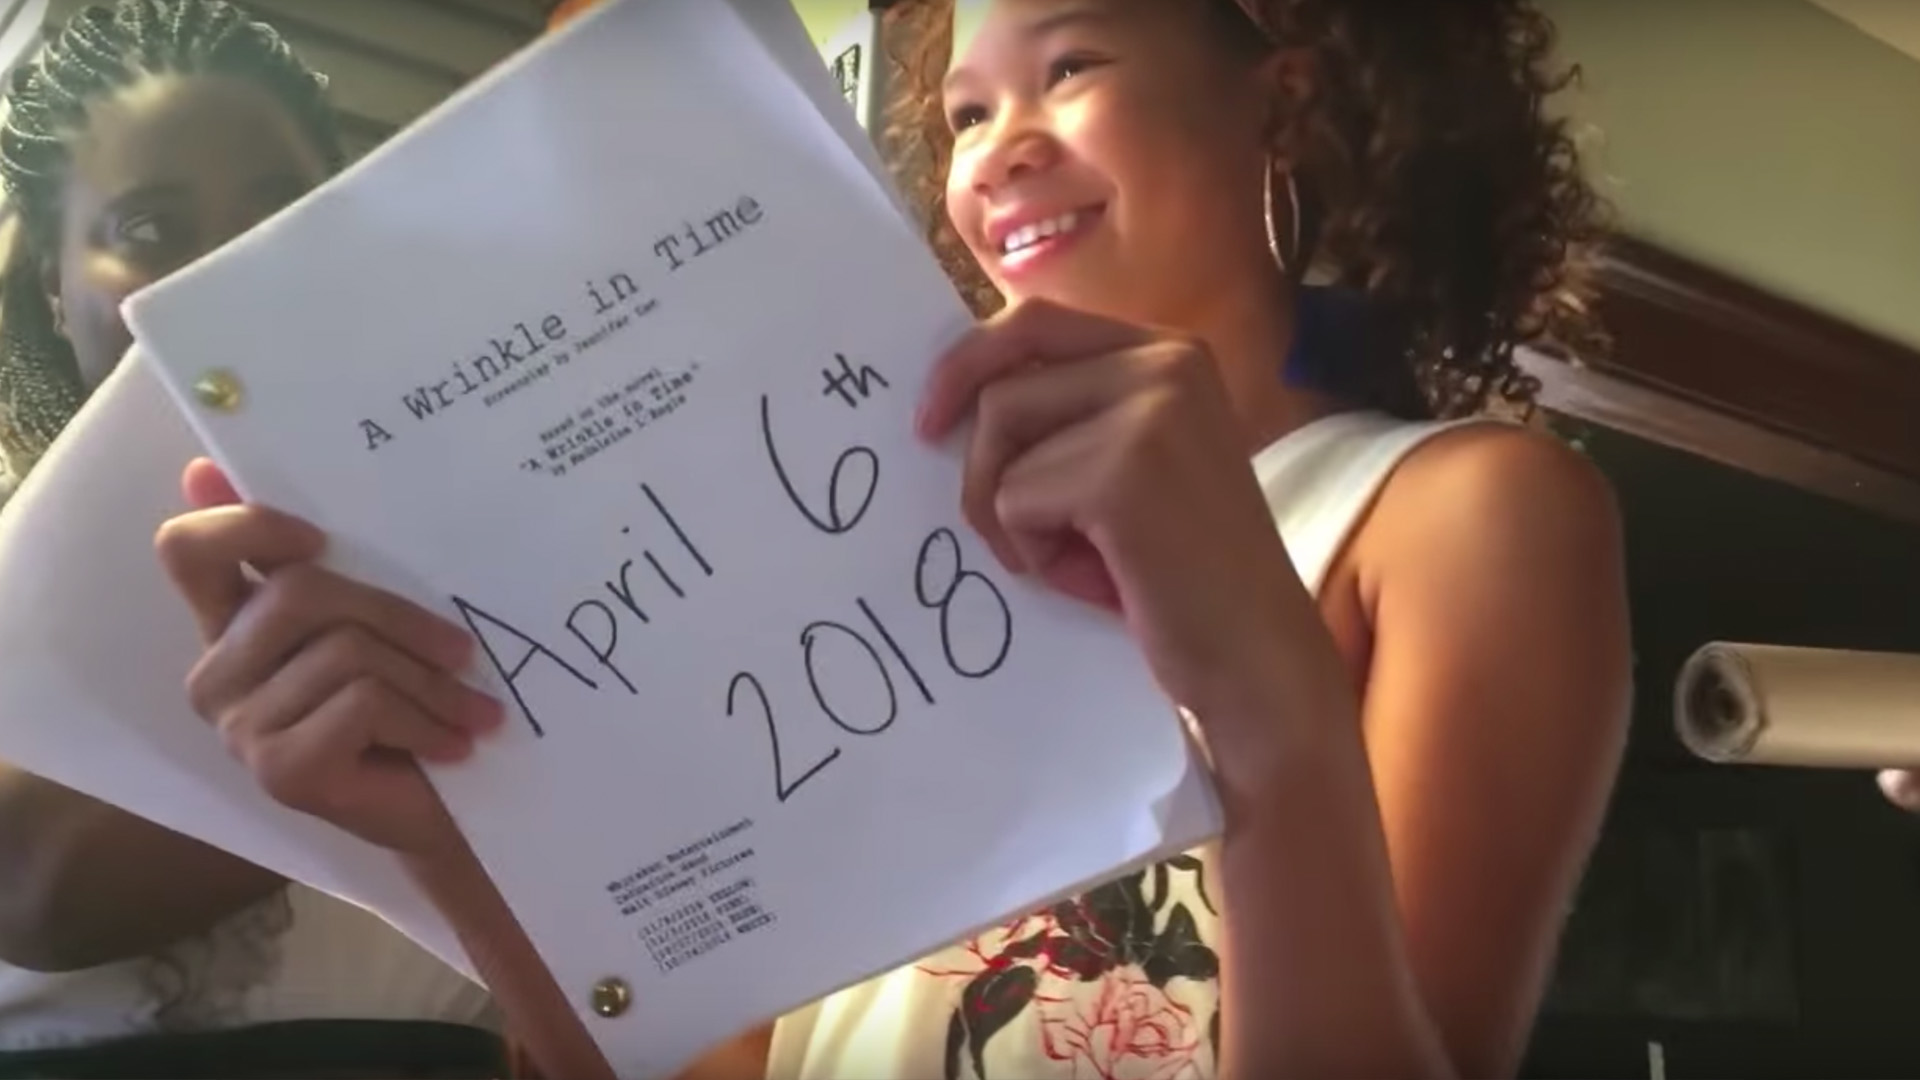 Disney S A Wrinkle In Time Release Date Moved Up Geektyrant